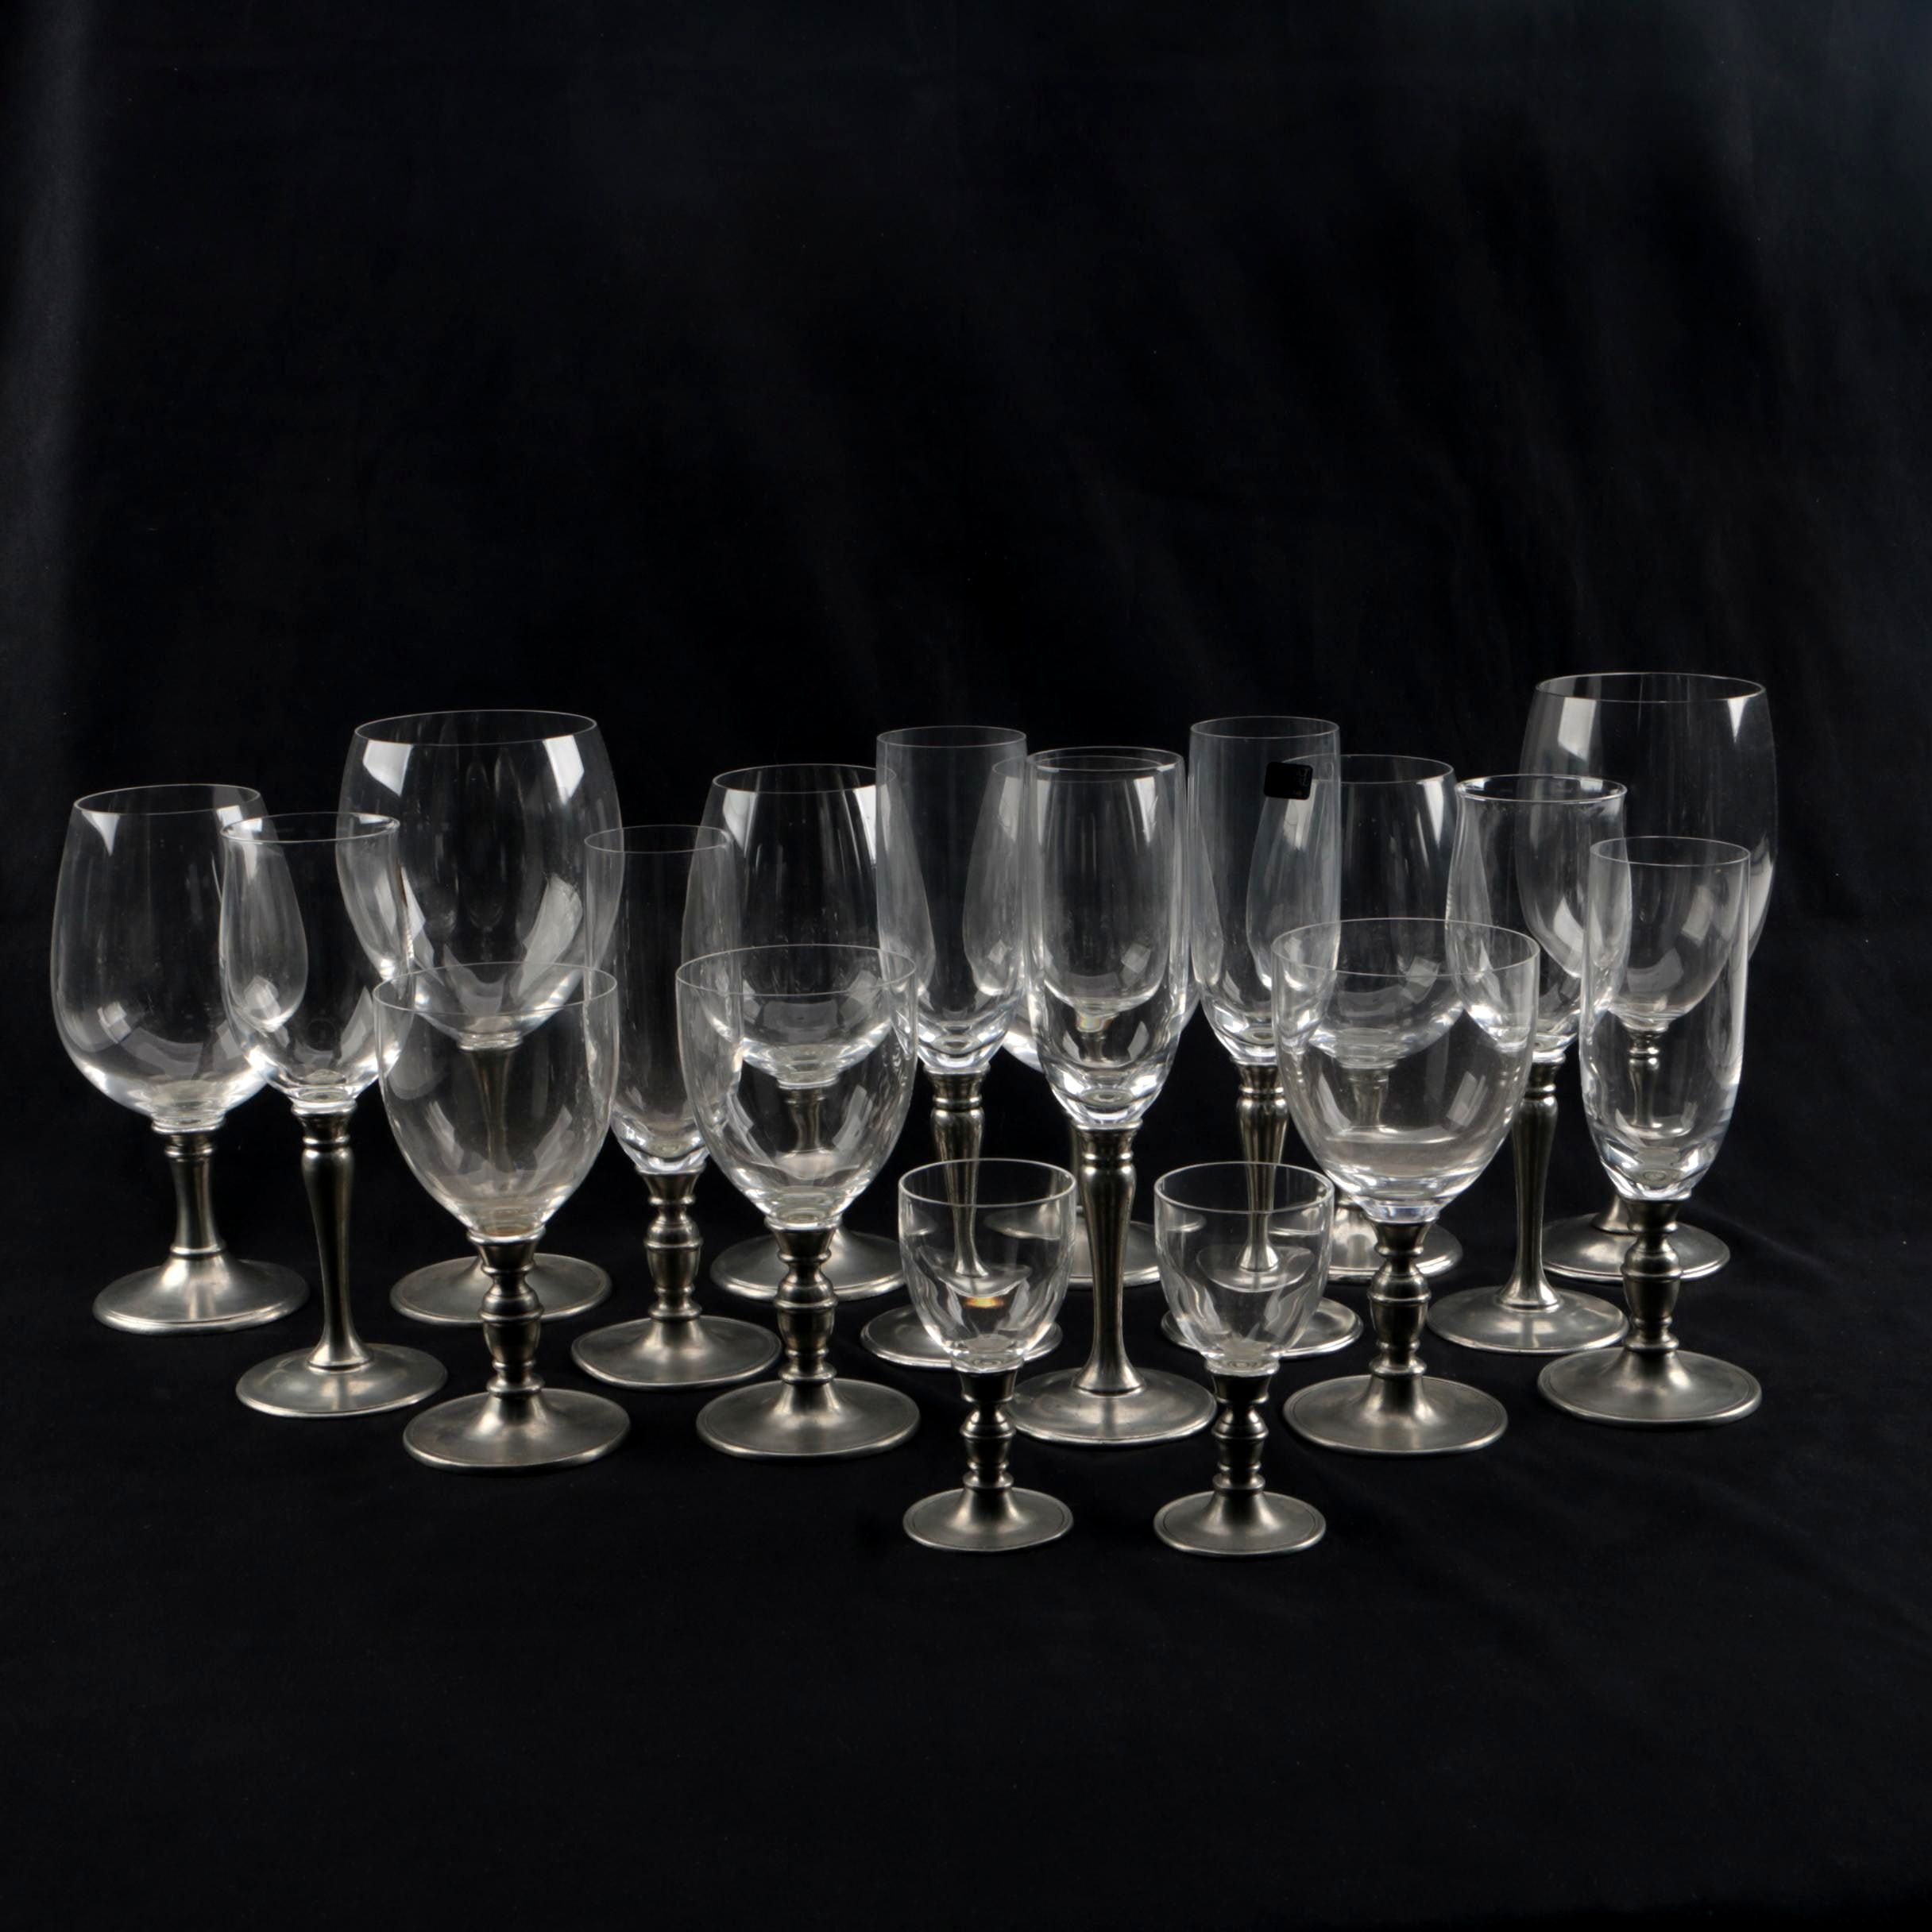 La Bottega del Peltro Pewter and Crystal Stemware